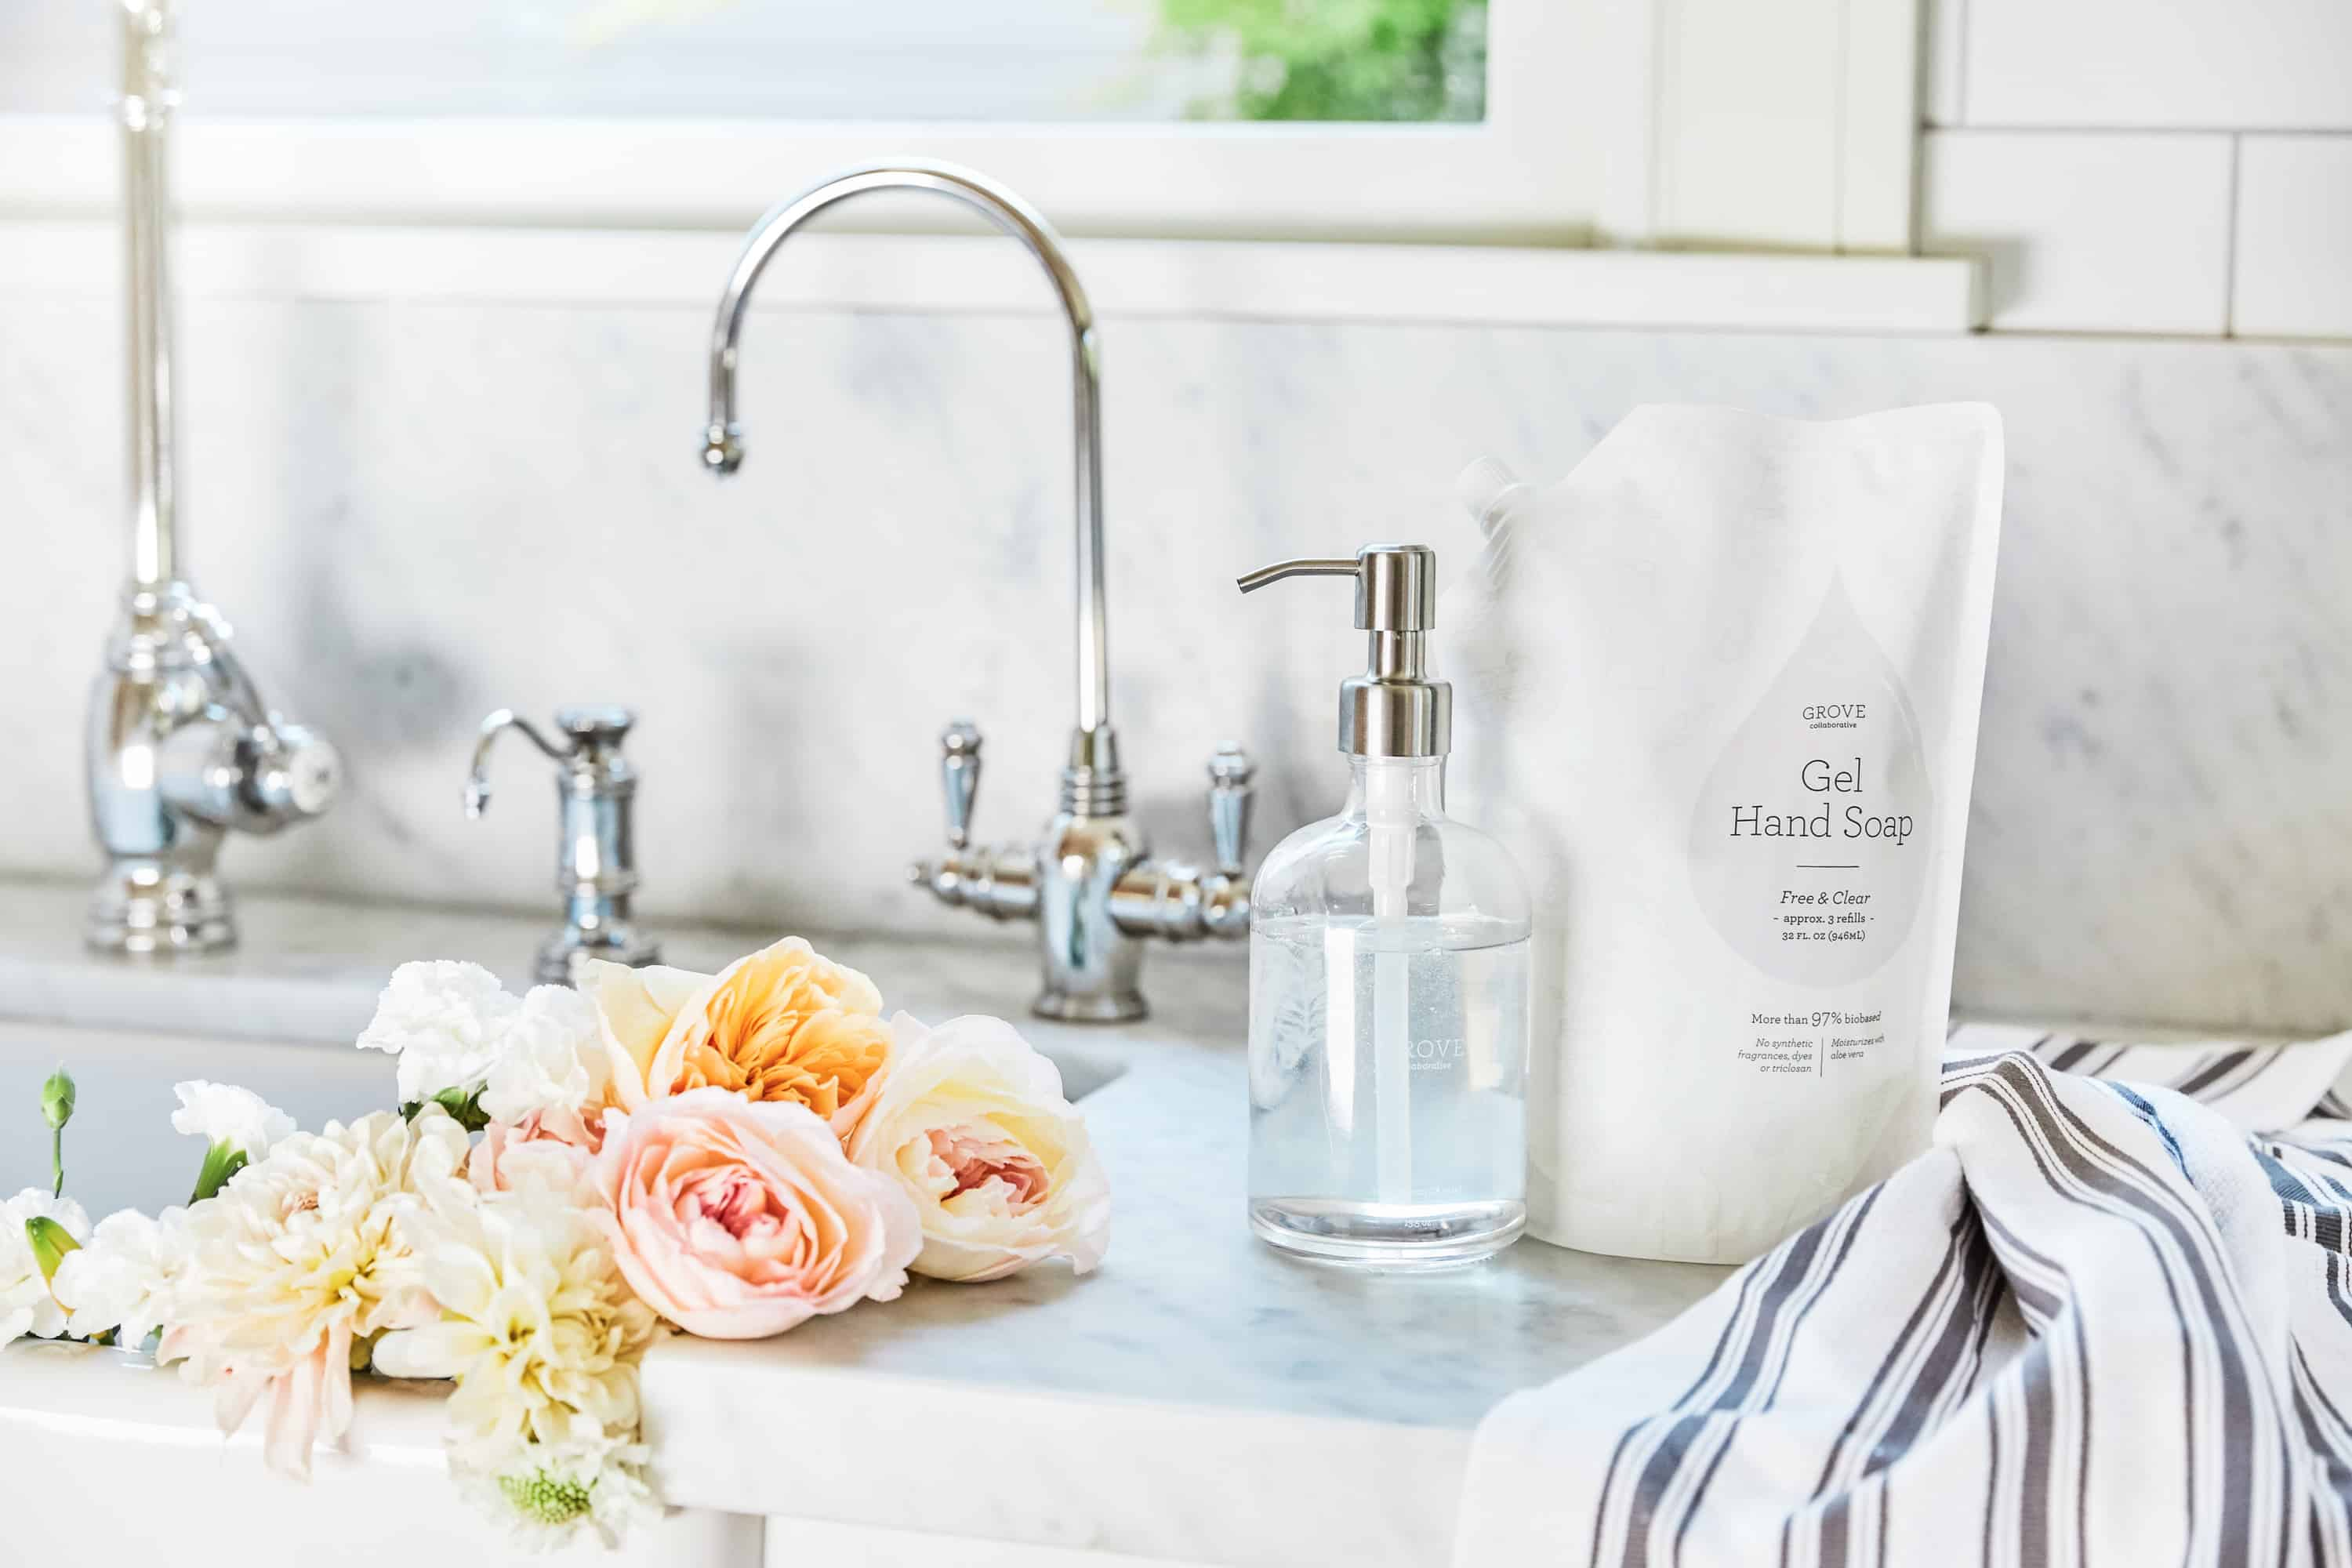 Grove Collaborative: Grove Hand Soap OR Seedling Set – Free With $20 Purchase!